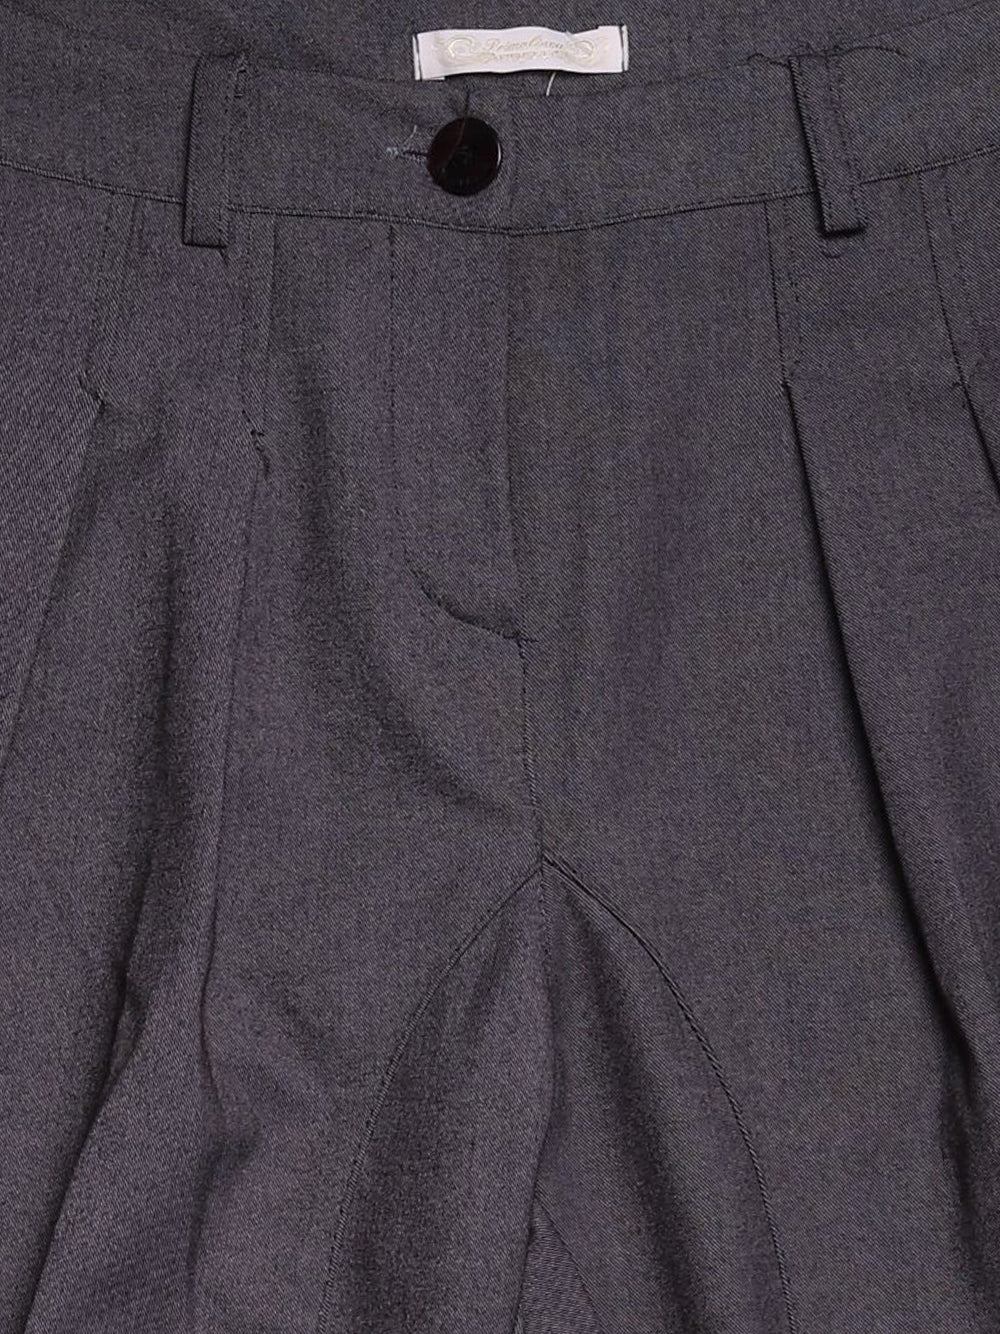 Detail photo of Preloved prima linea Grey Woman's trousers - size 14/XL